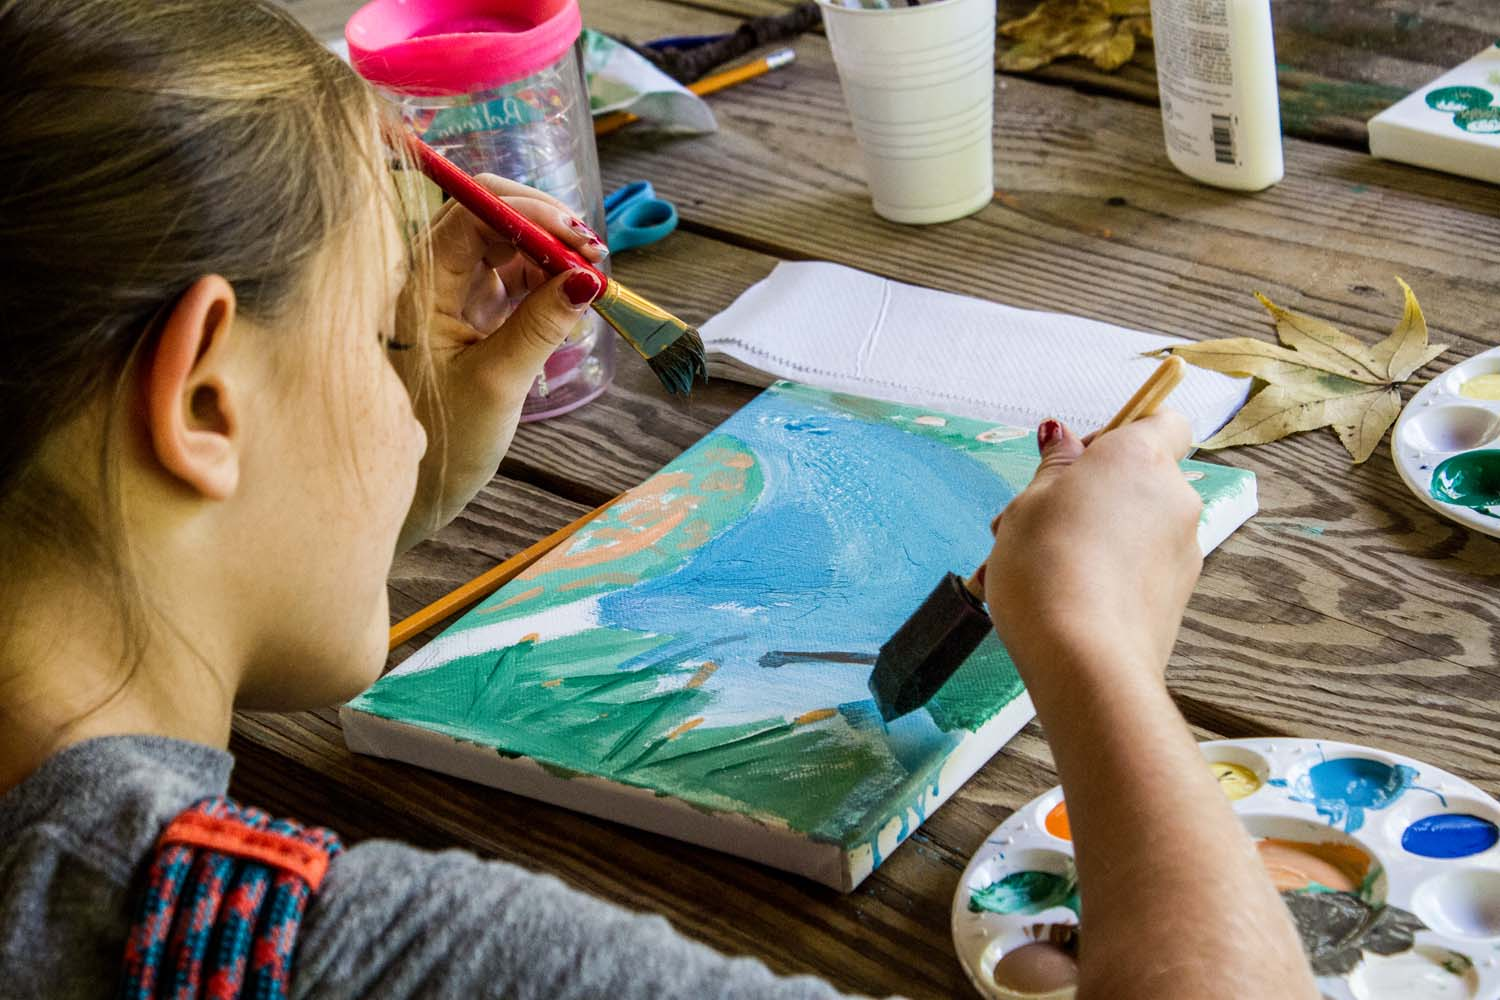 The photo is taken from behind a girl painting. She holds a sponge as she paints a wetland scene of cattails and blue sky. Upon the table are paint palettes with a variety of colors, a water cup for paint brushes, a cup of drinking water, glue, scissors, and paper towels. The table is wooden.